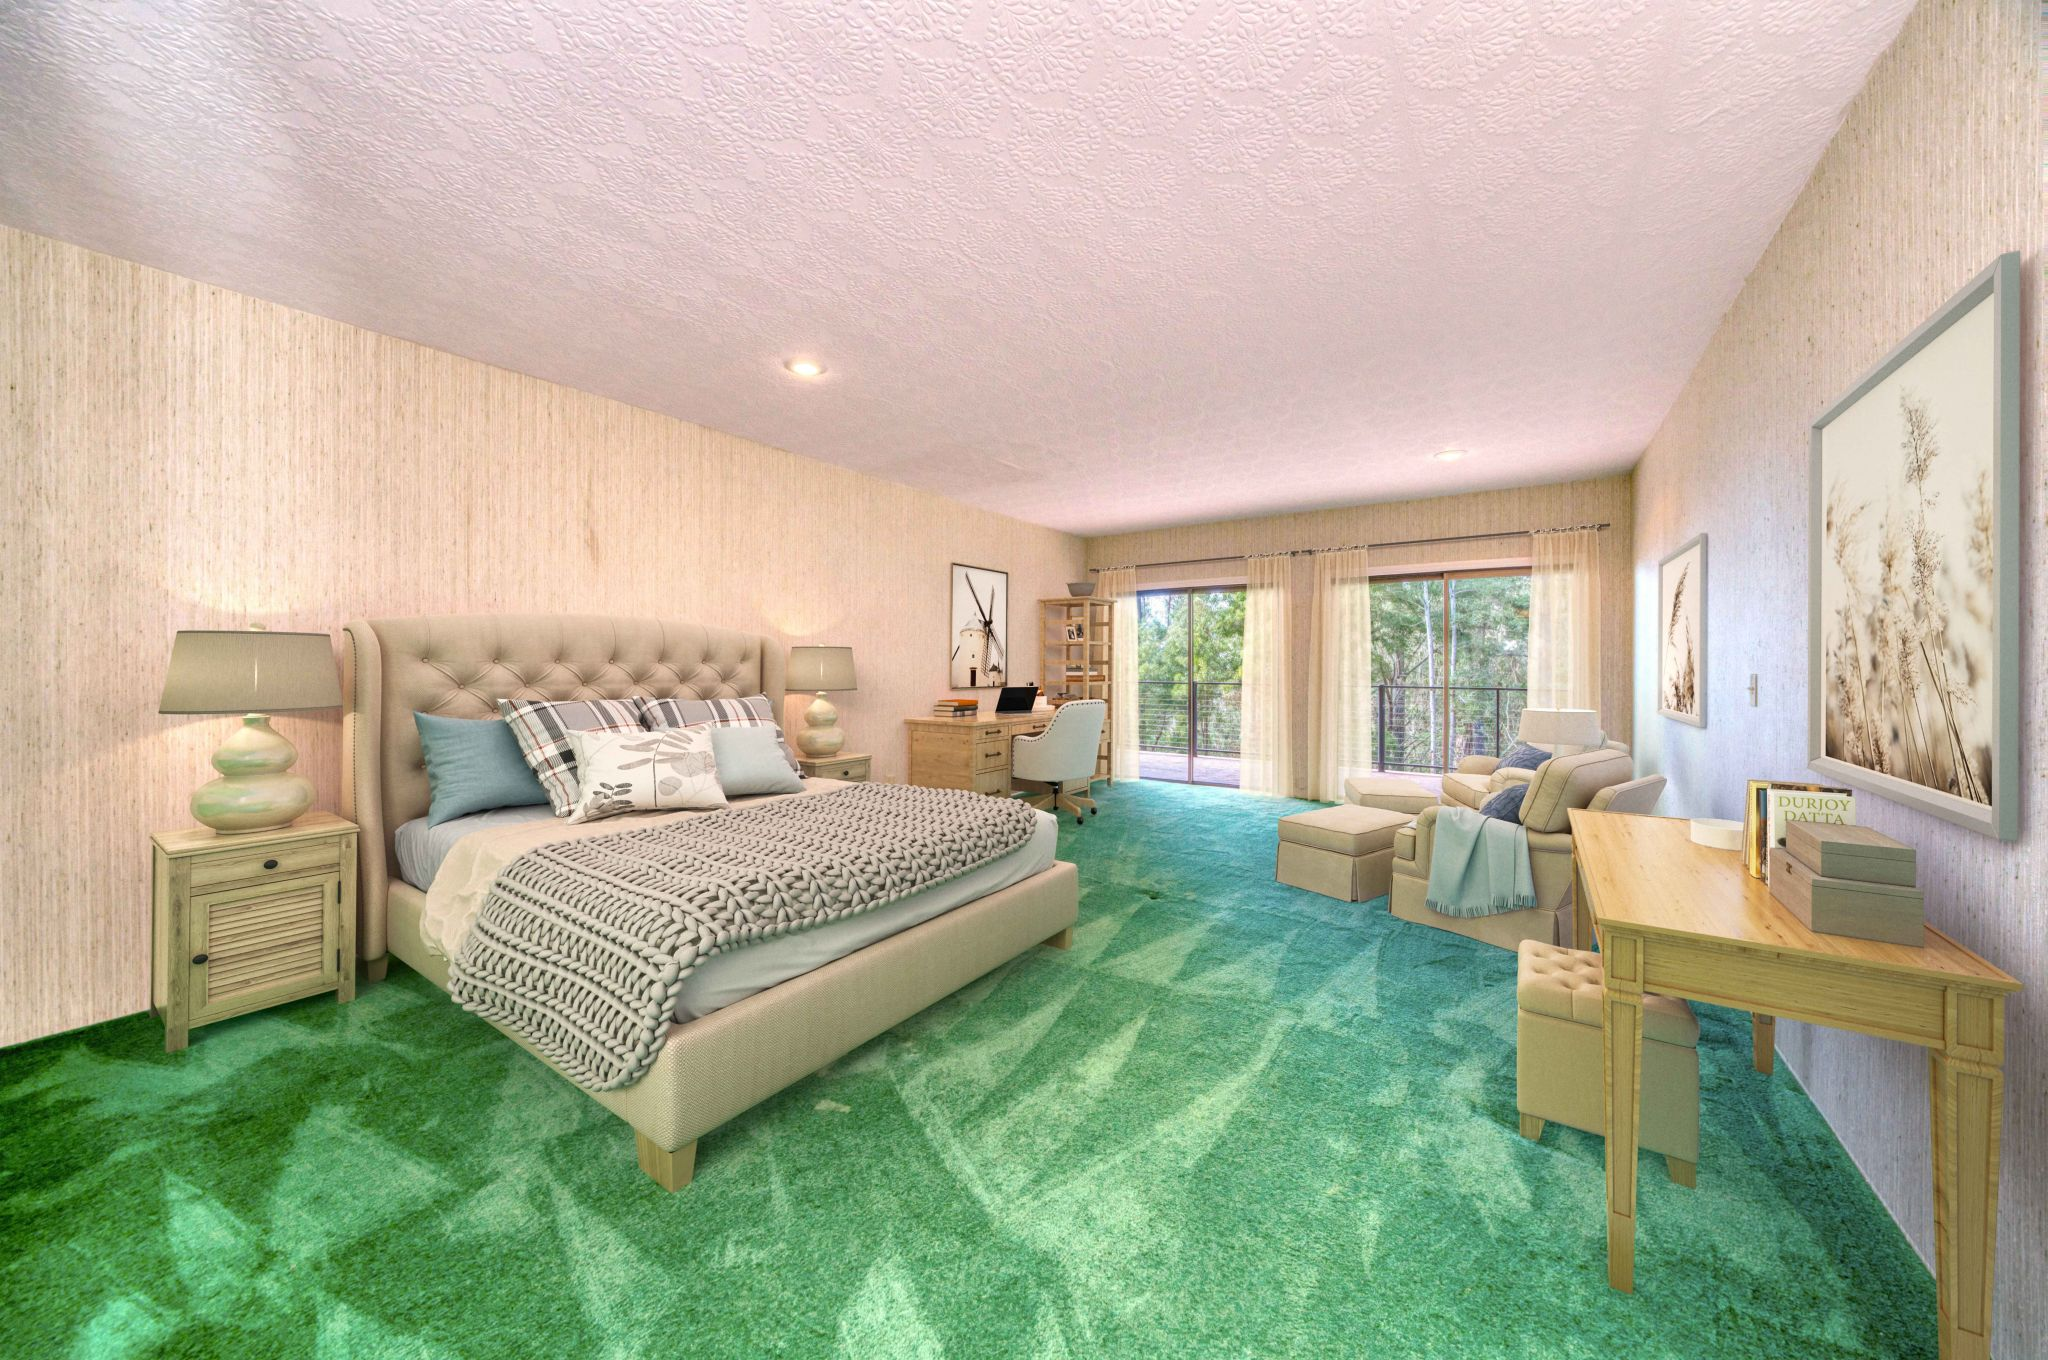 The '80s color palette continues with this pistachio green carpet.